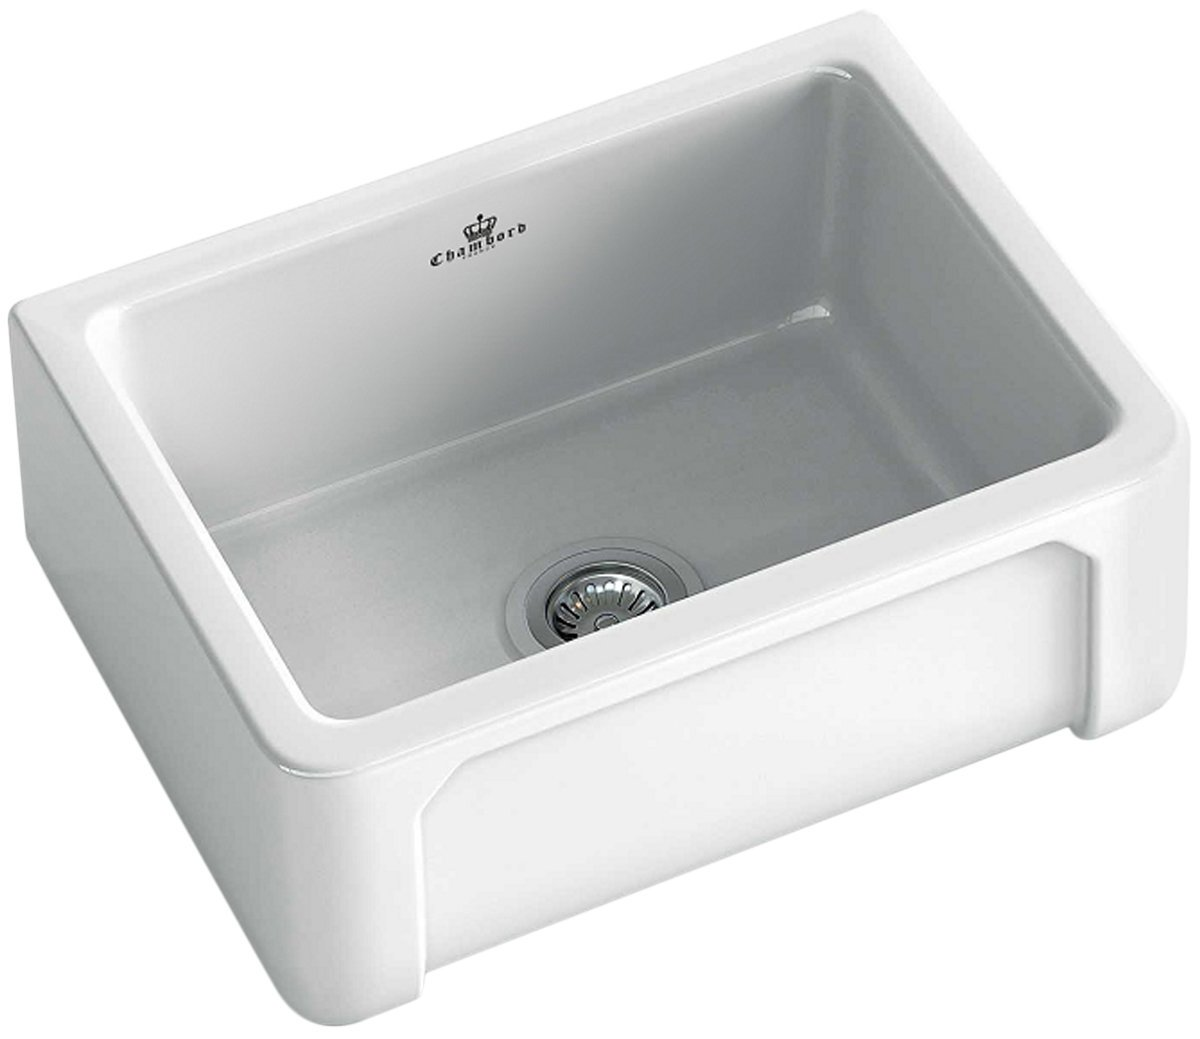 Abey HENRI-1W Chambord Henri Single Bowl Ceramic Sink 128874